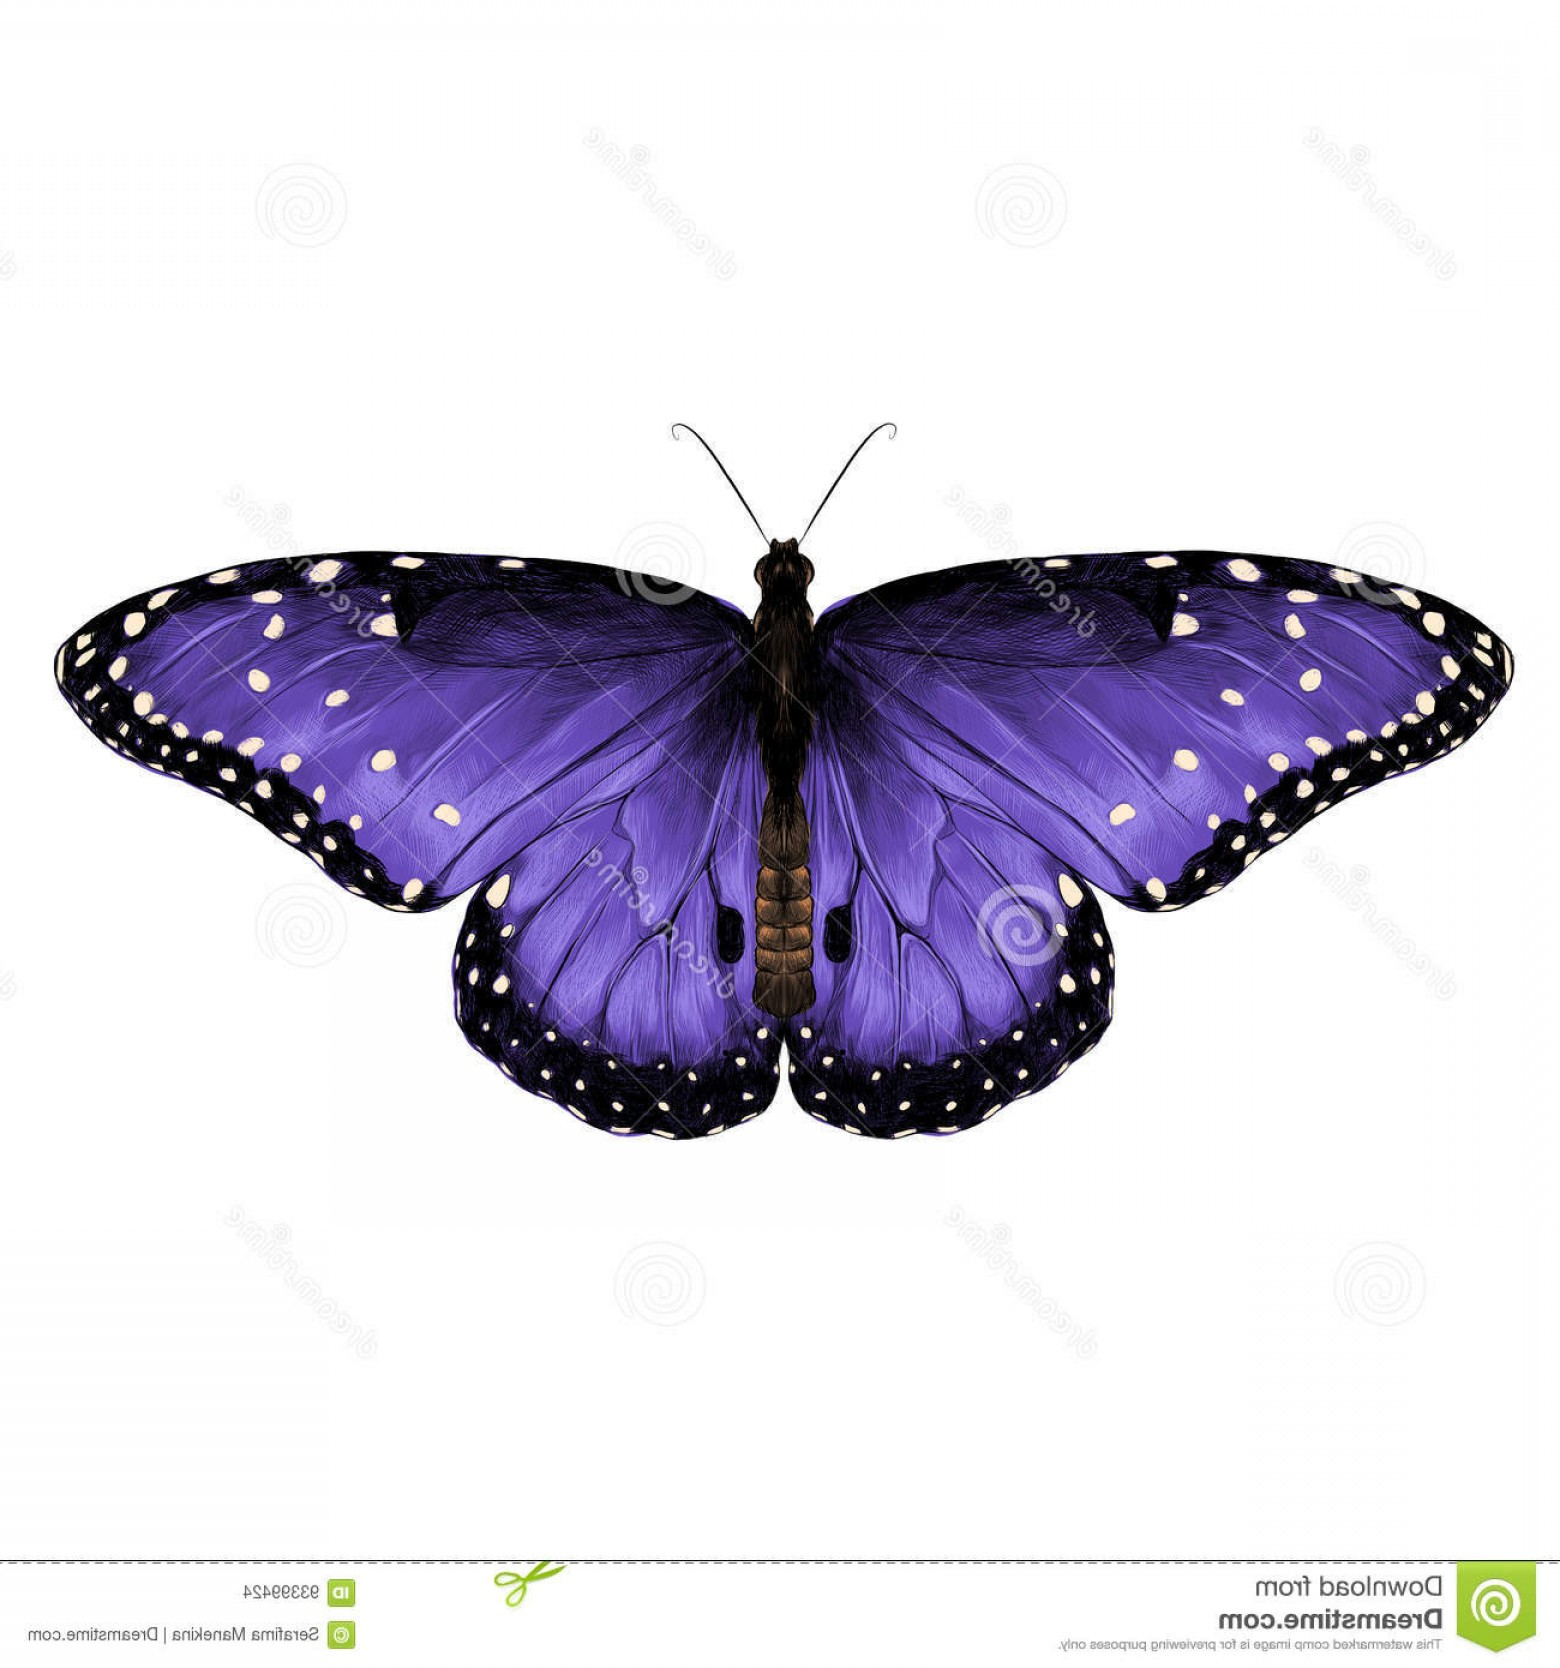 Real Butterfly Vector: Stock Illustration Butterfly Sketch Vector Graphics Top View Symmetrical Purple Stained Color Picture Image